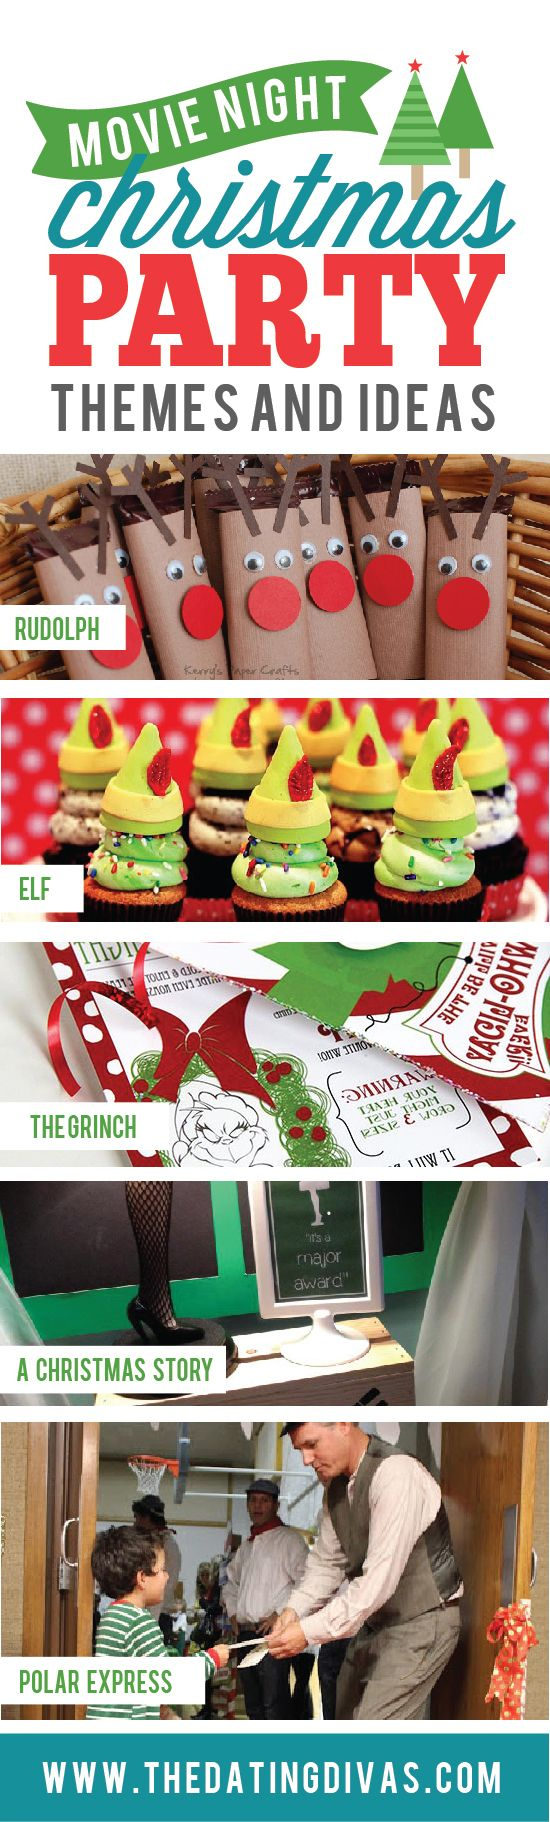 5 Movie Christmas Party themes to make this holiday season unforgettable!